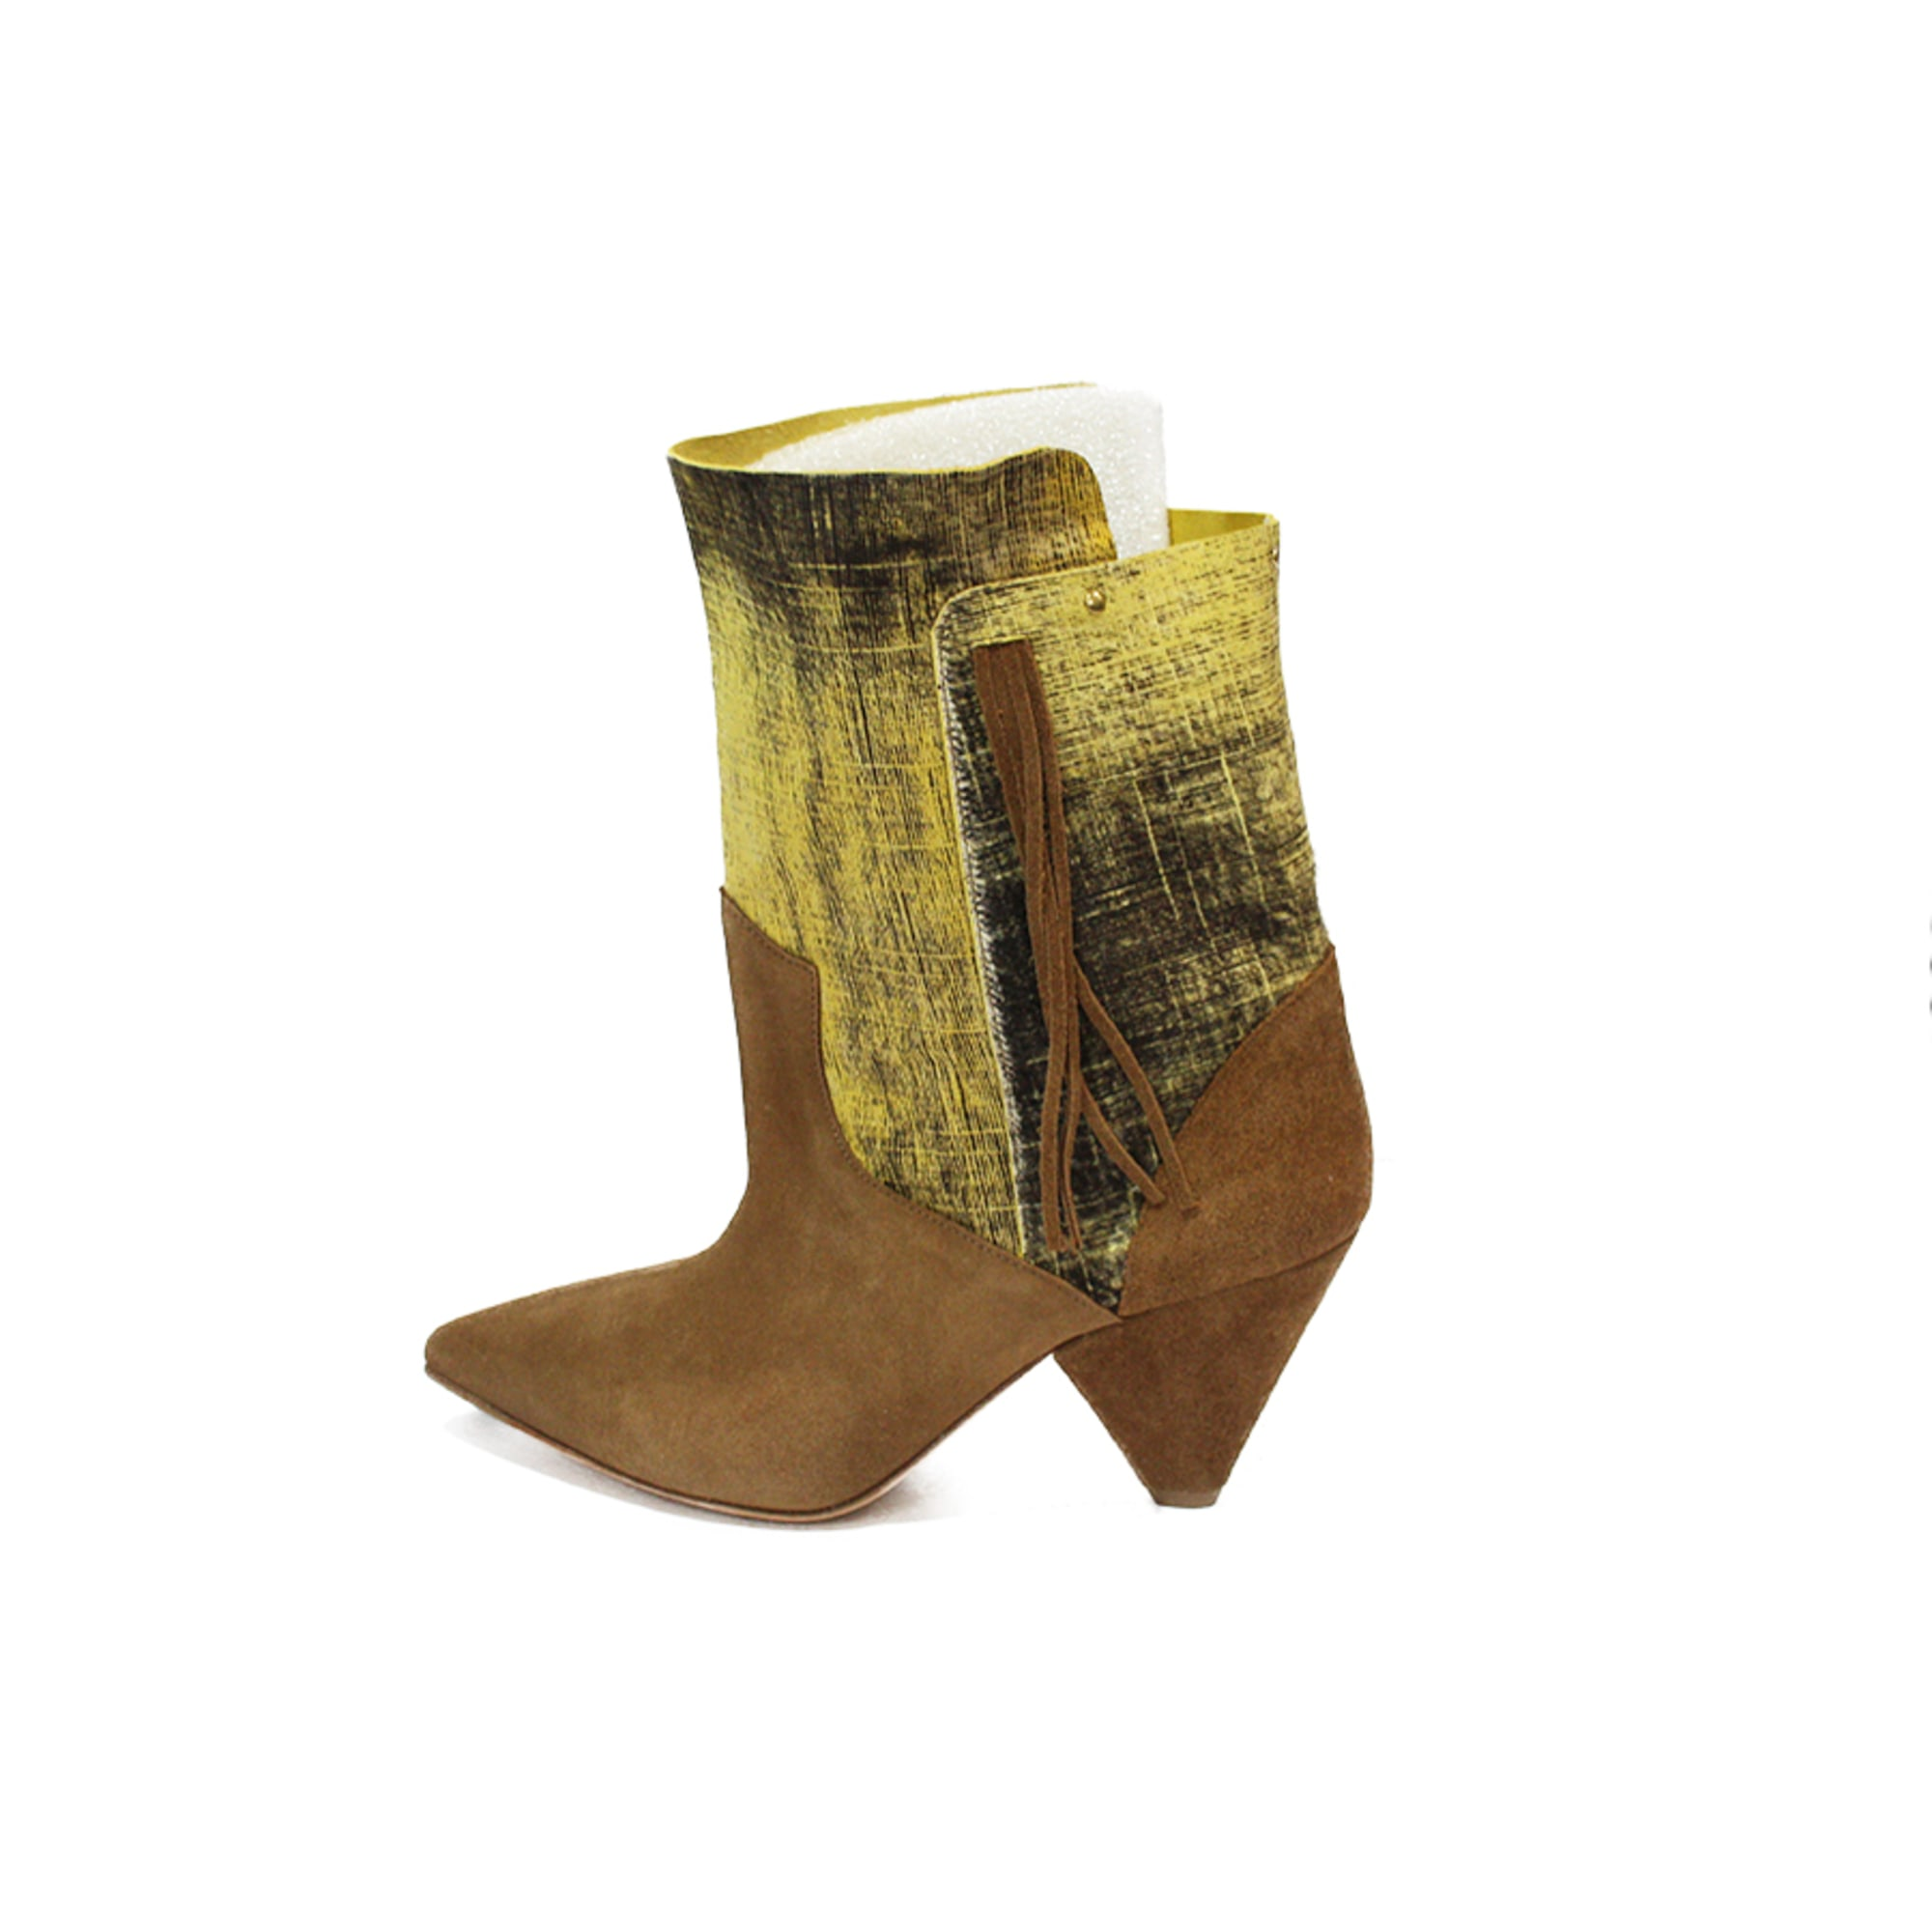 Bottines & low boots à talons JEROME DREYFUSS Beige, camel